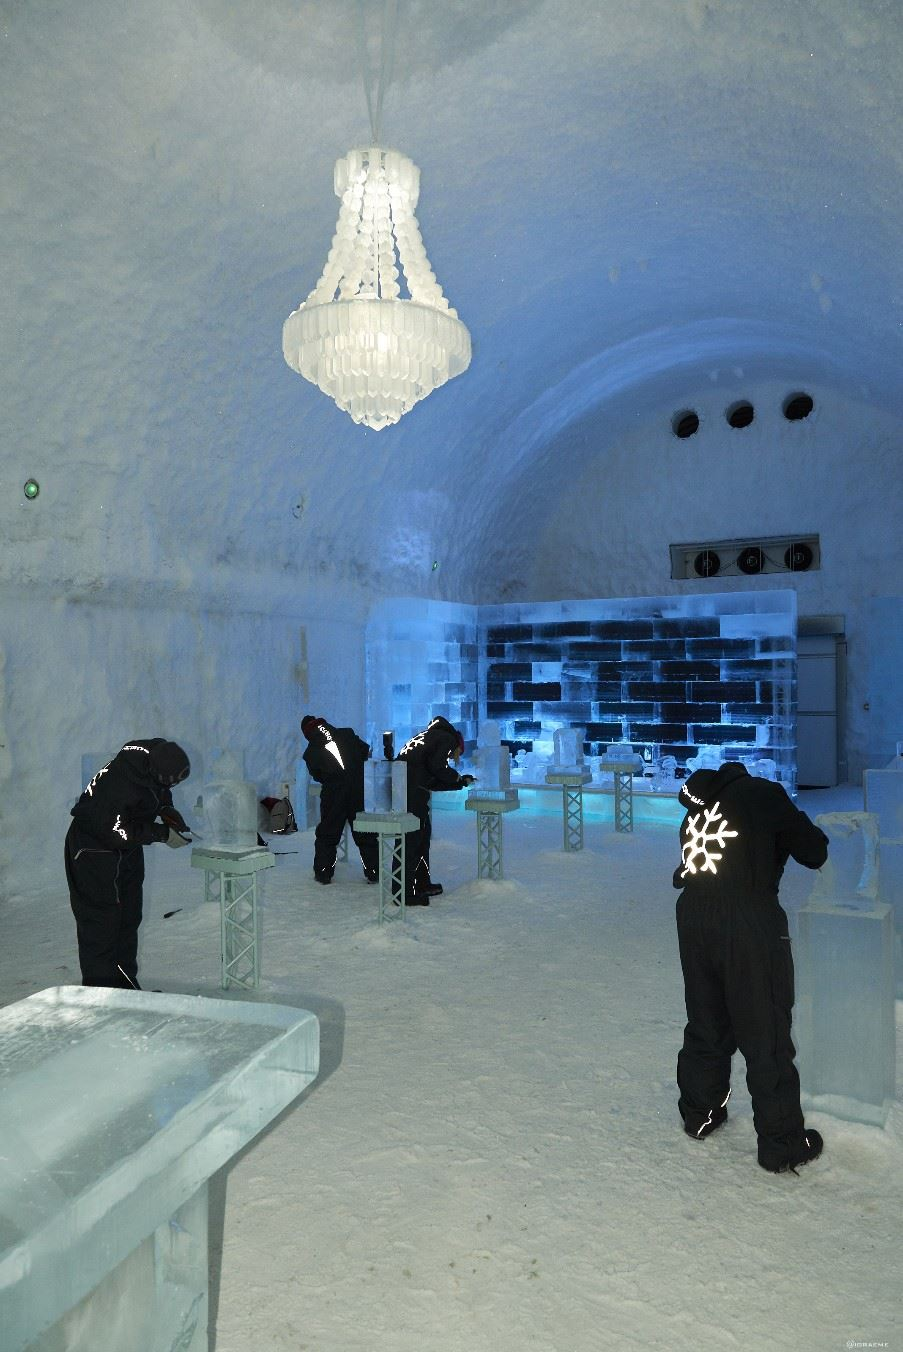 Ice sculpting, ICEHOTEL